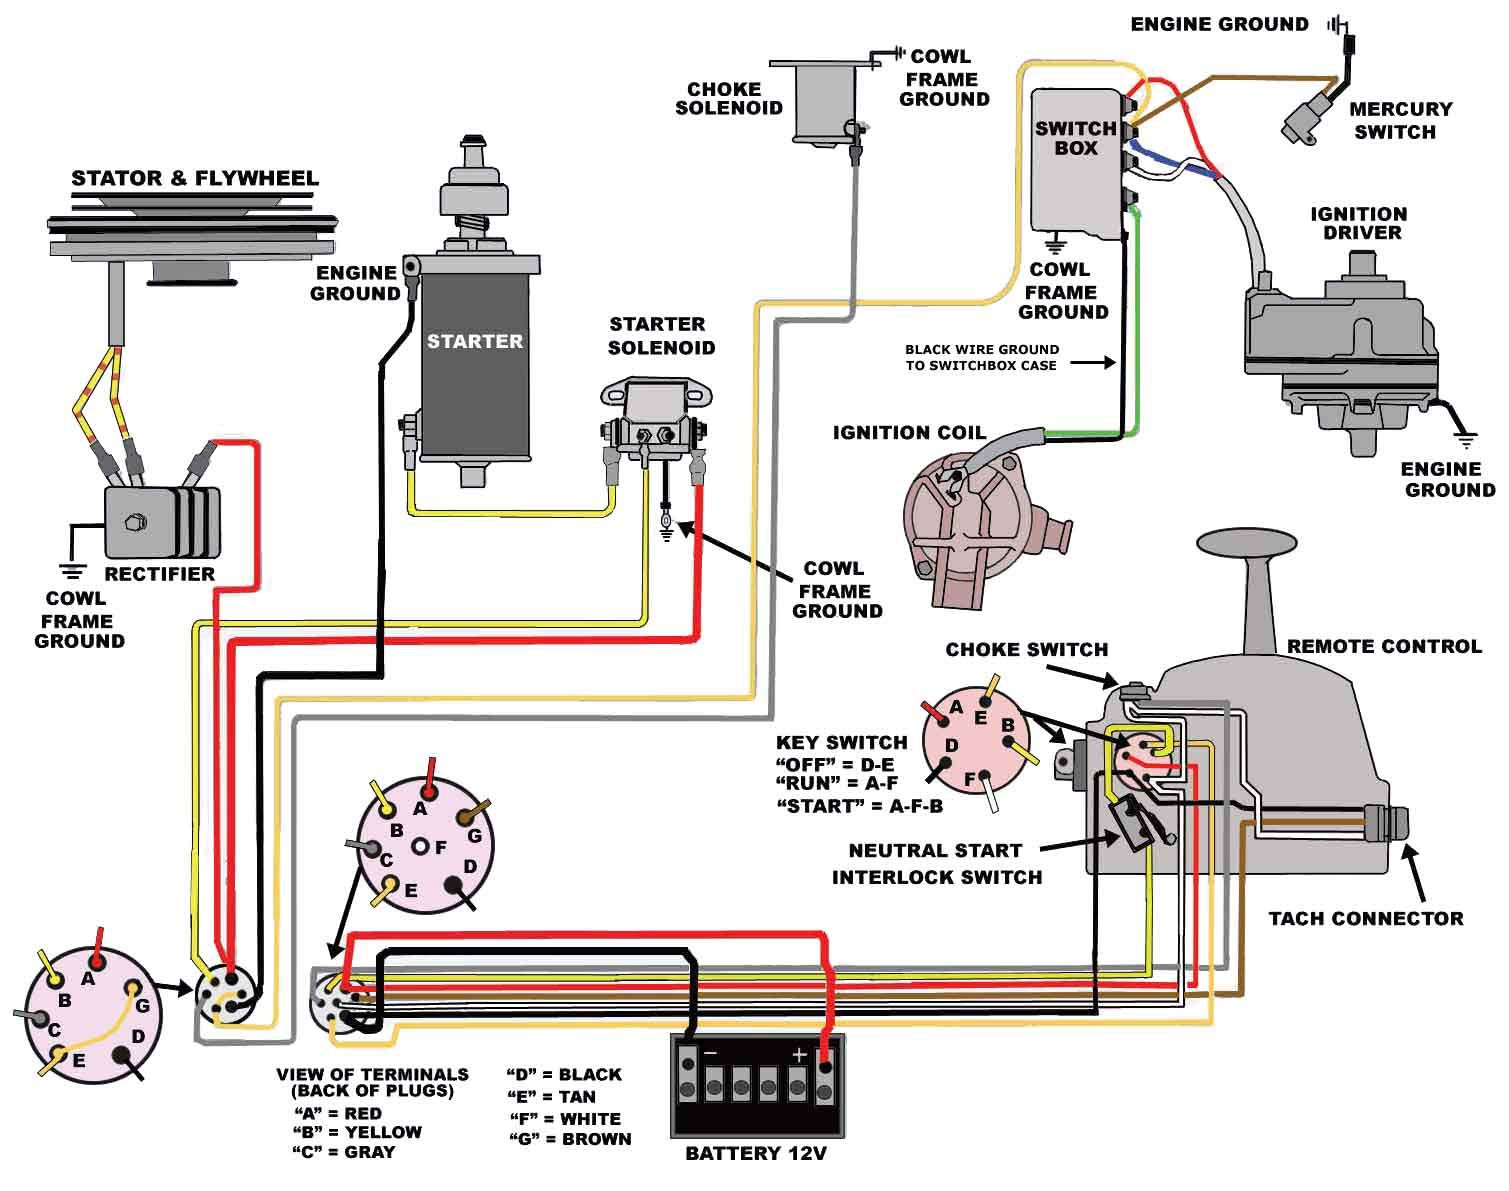 mercury wiring harness diagram wiring diagram on the net Mercury Outboard Parts Online